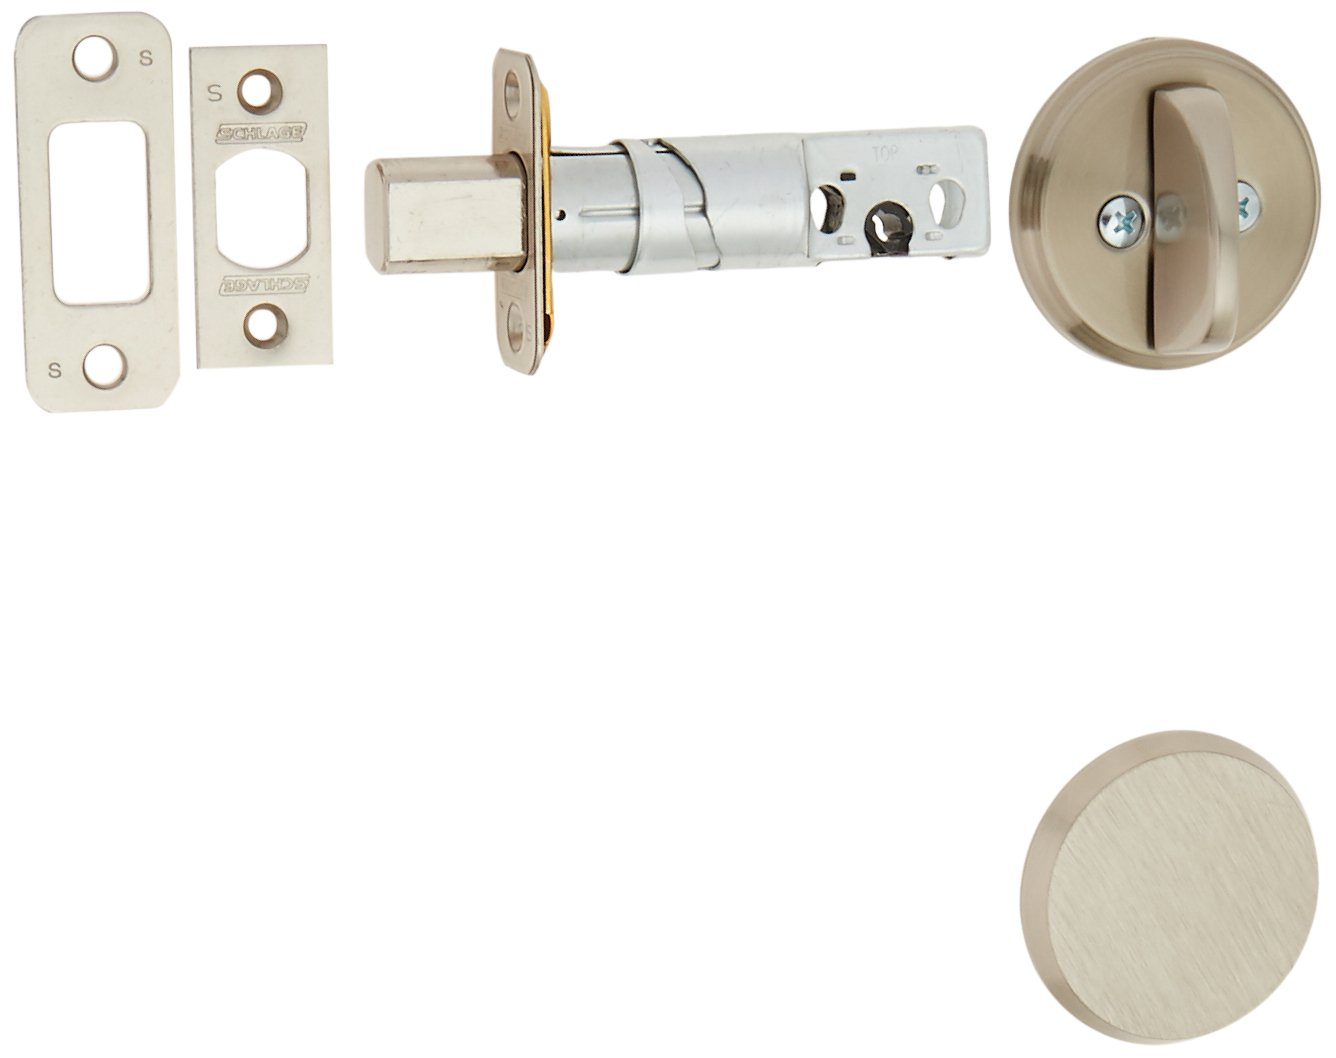 Schlage B81619 Satin Nickel Single Sided Residential Deadbolt with Thumbturn and Outside Trim Plate from the B-Series